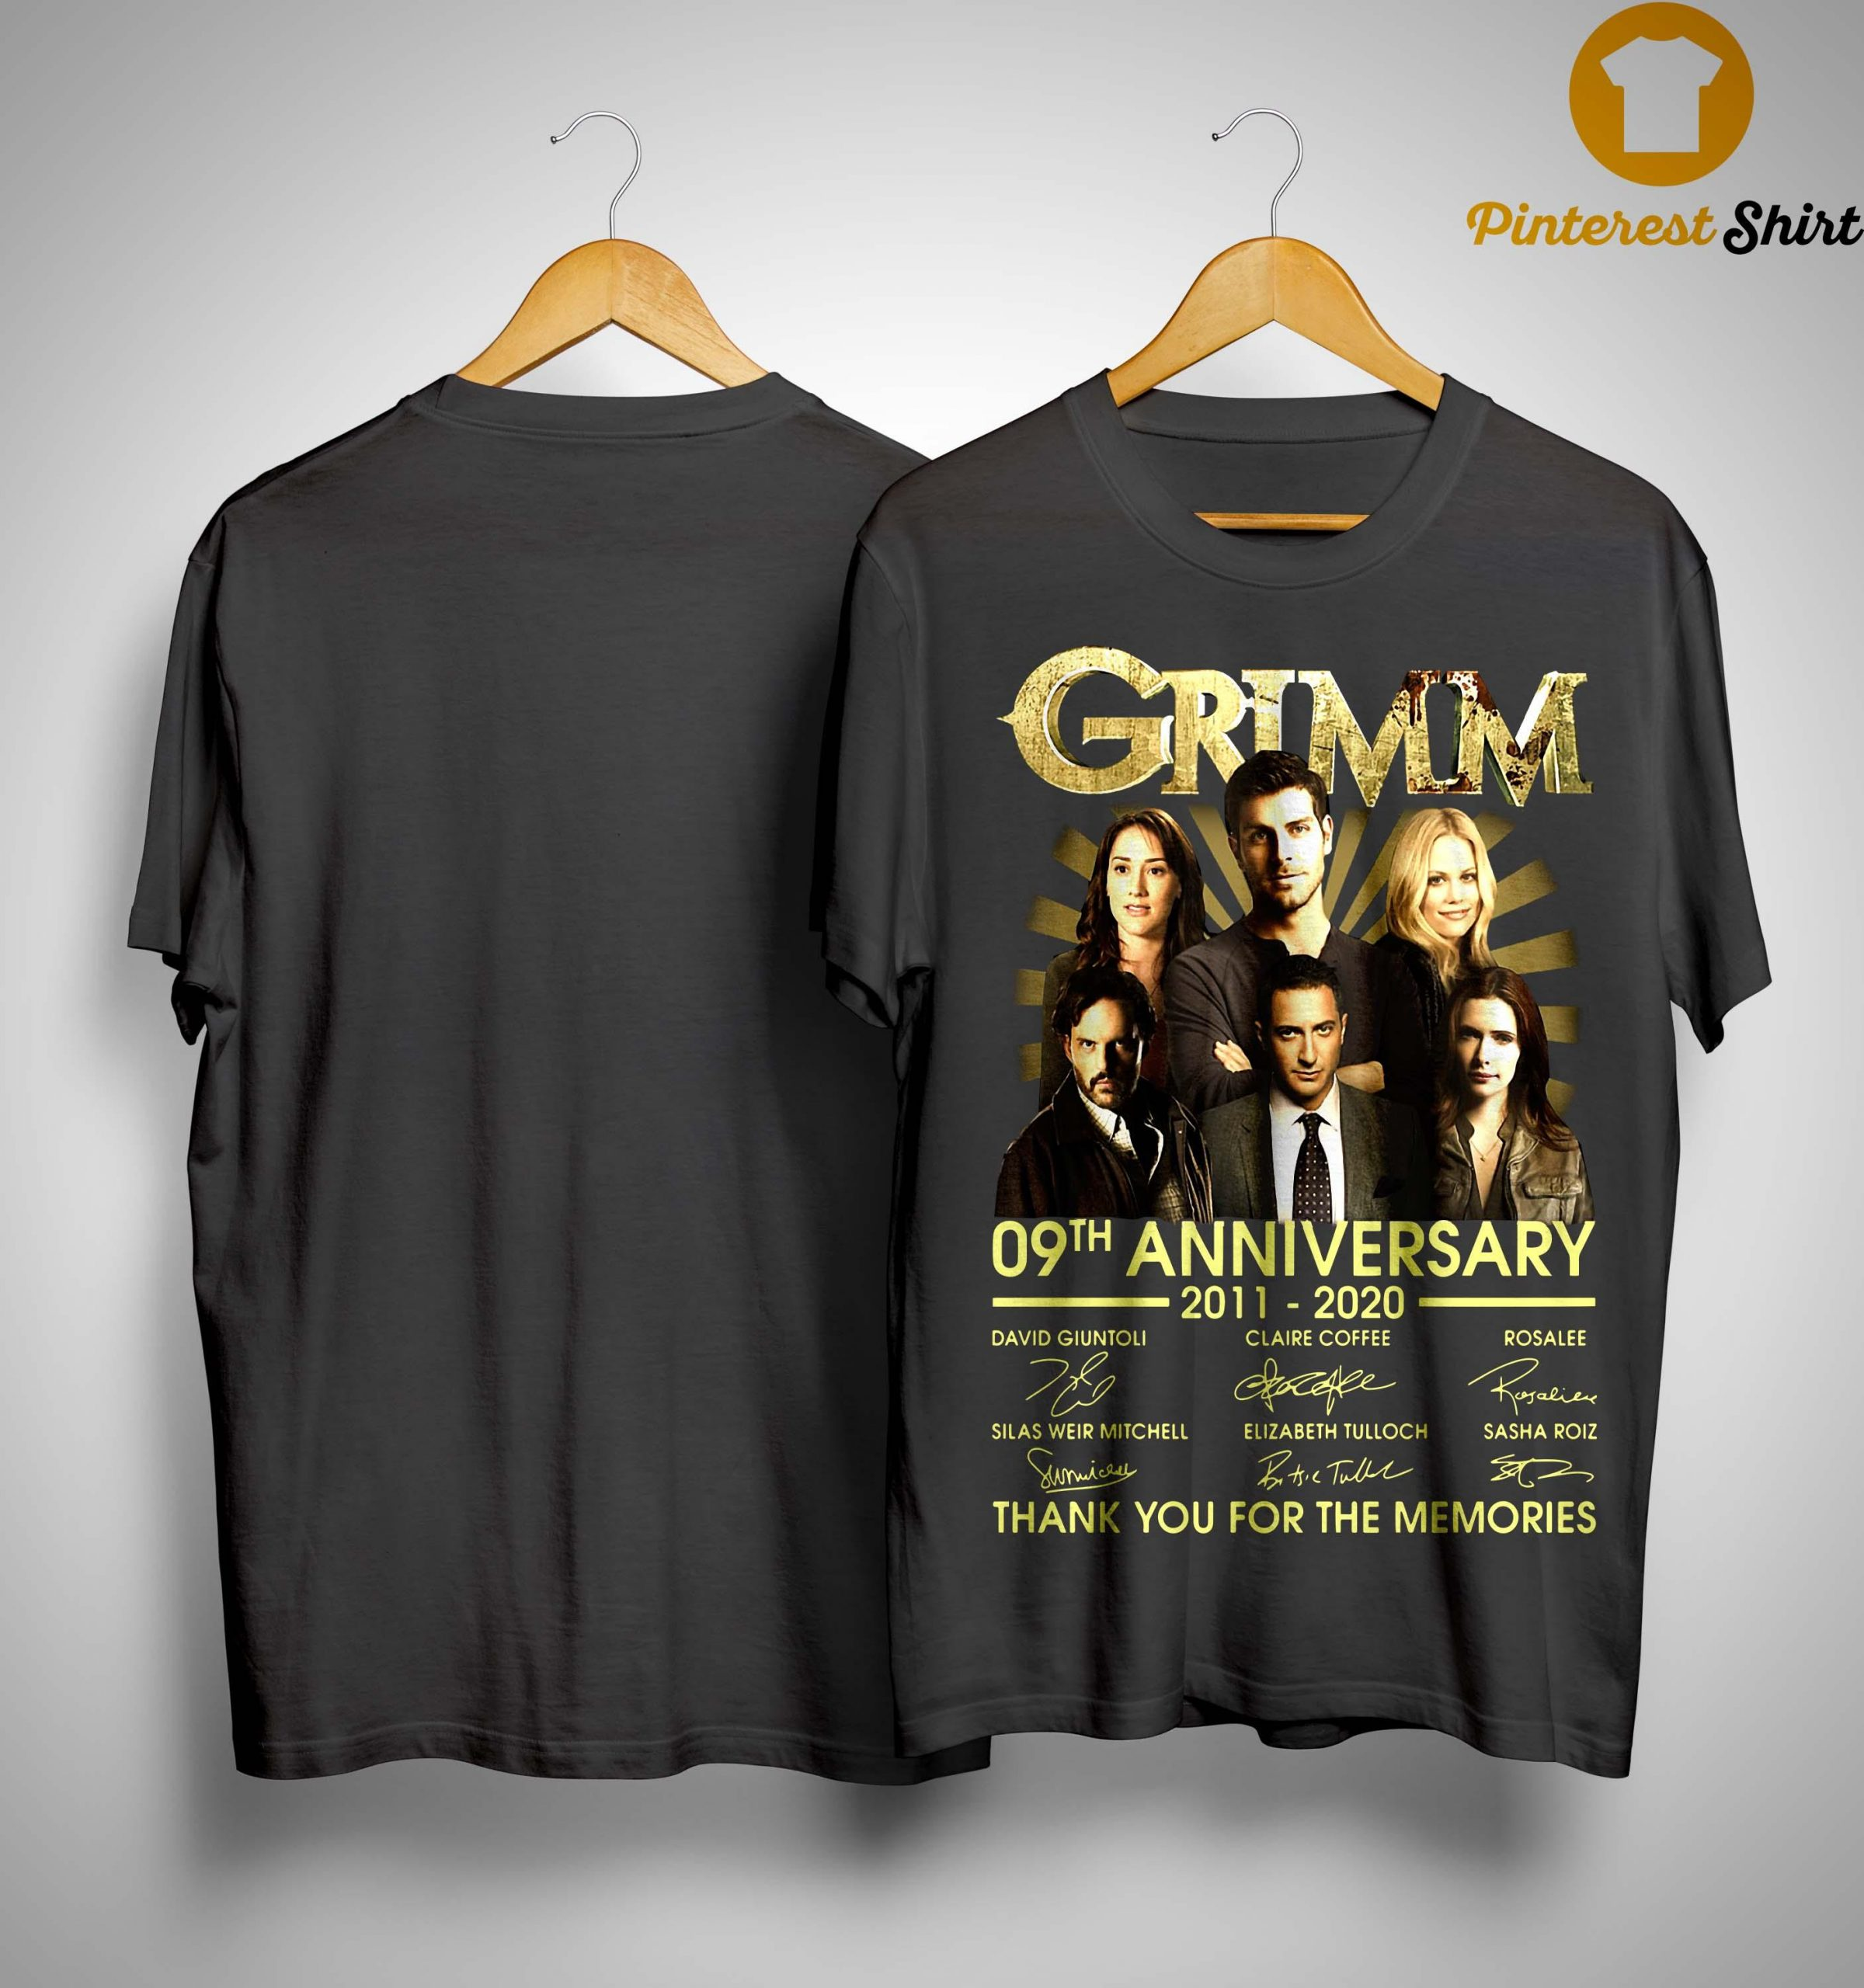 Grimm 09th Anniversary Thank You For The Memories Shirt